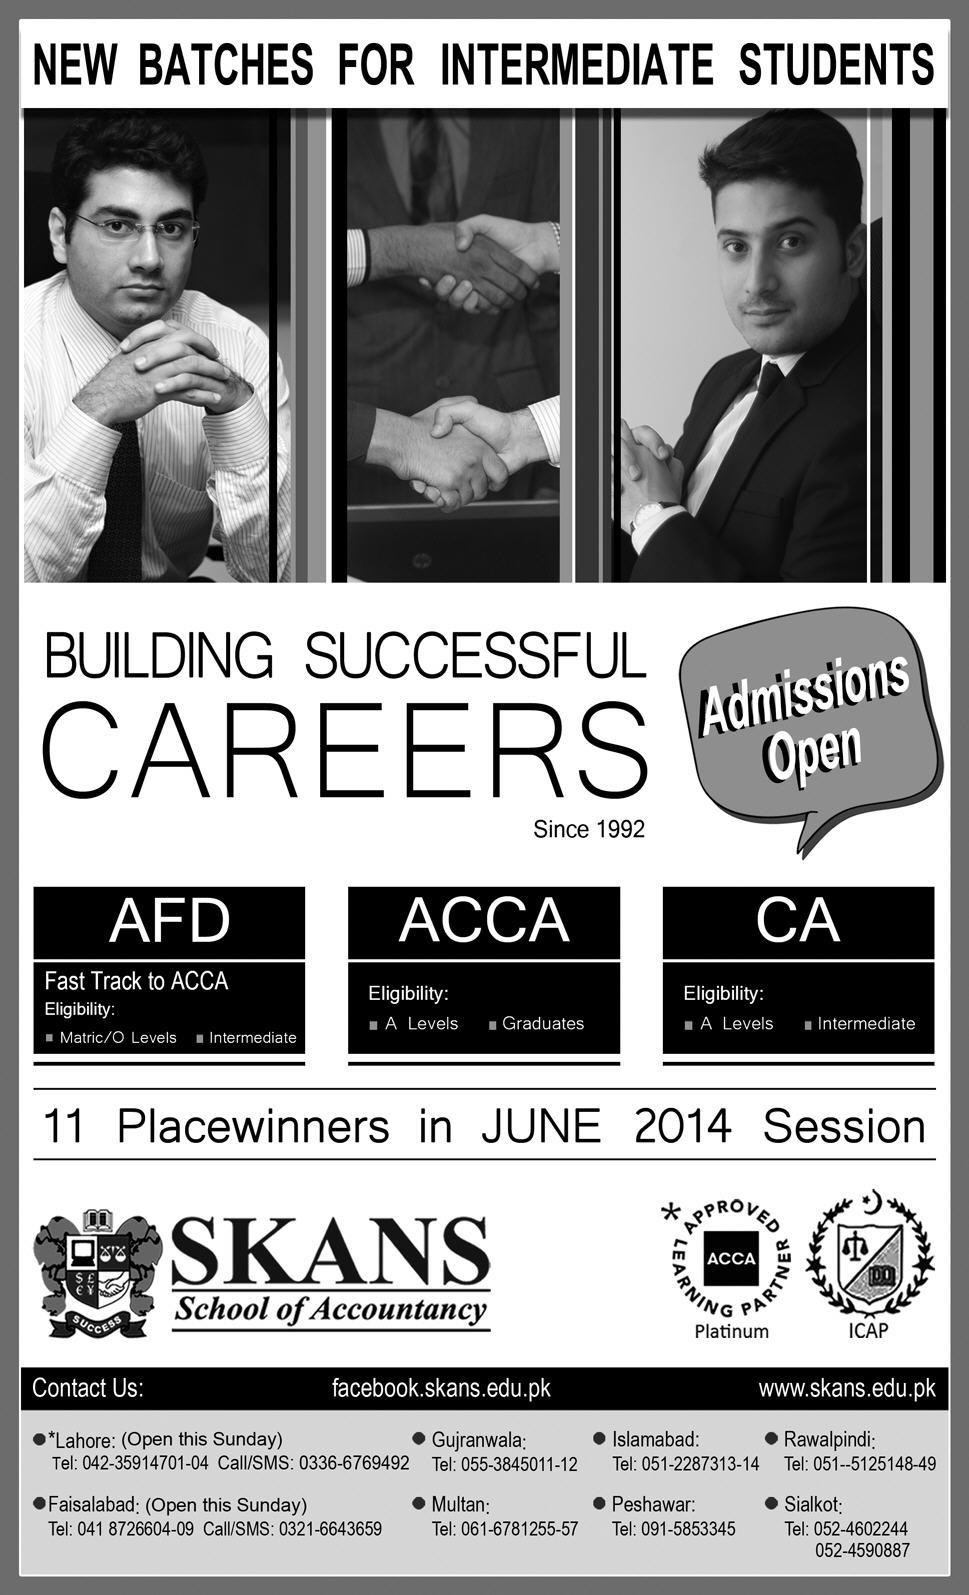 SKANS School of Accountancy Lahore Admission Notice 2014-2015 for Association of Chartered Certified Accountants (ACCA), Chartered Accountants (CA), Foundation Diploma (FD)